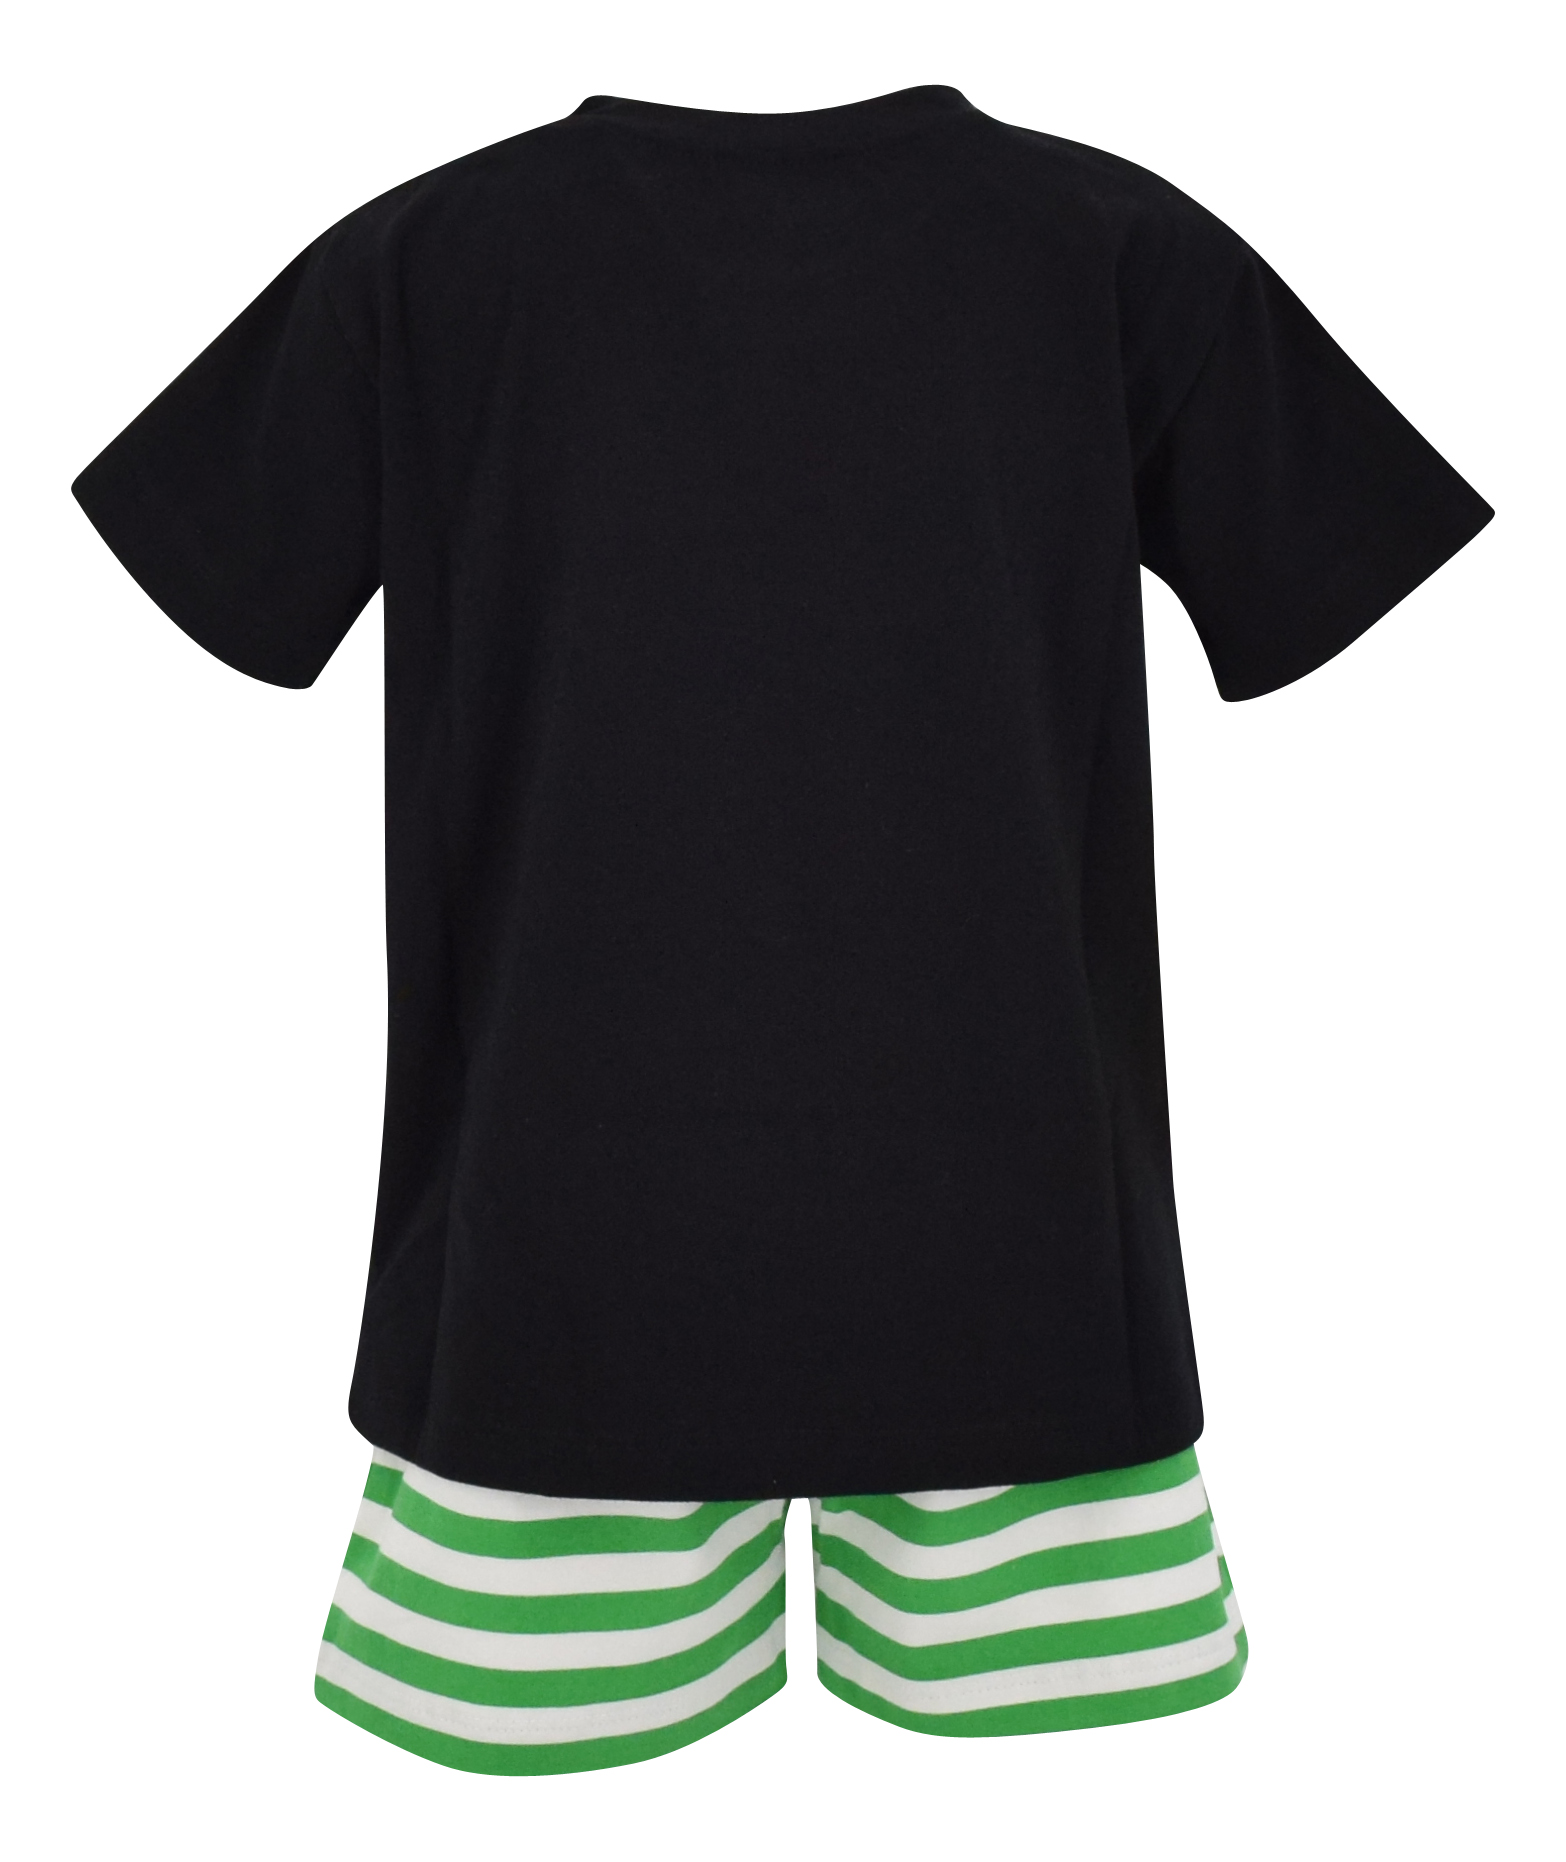 Boys-2-Piece-ST-Patricks-Day-Clover-Outfit-2t-3t-4t-5-6-7-8-Toddler-Kids-Clothes thumbnail 15